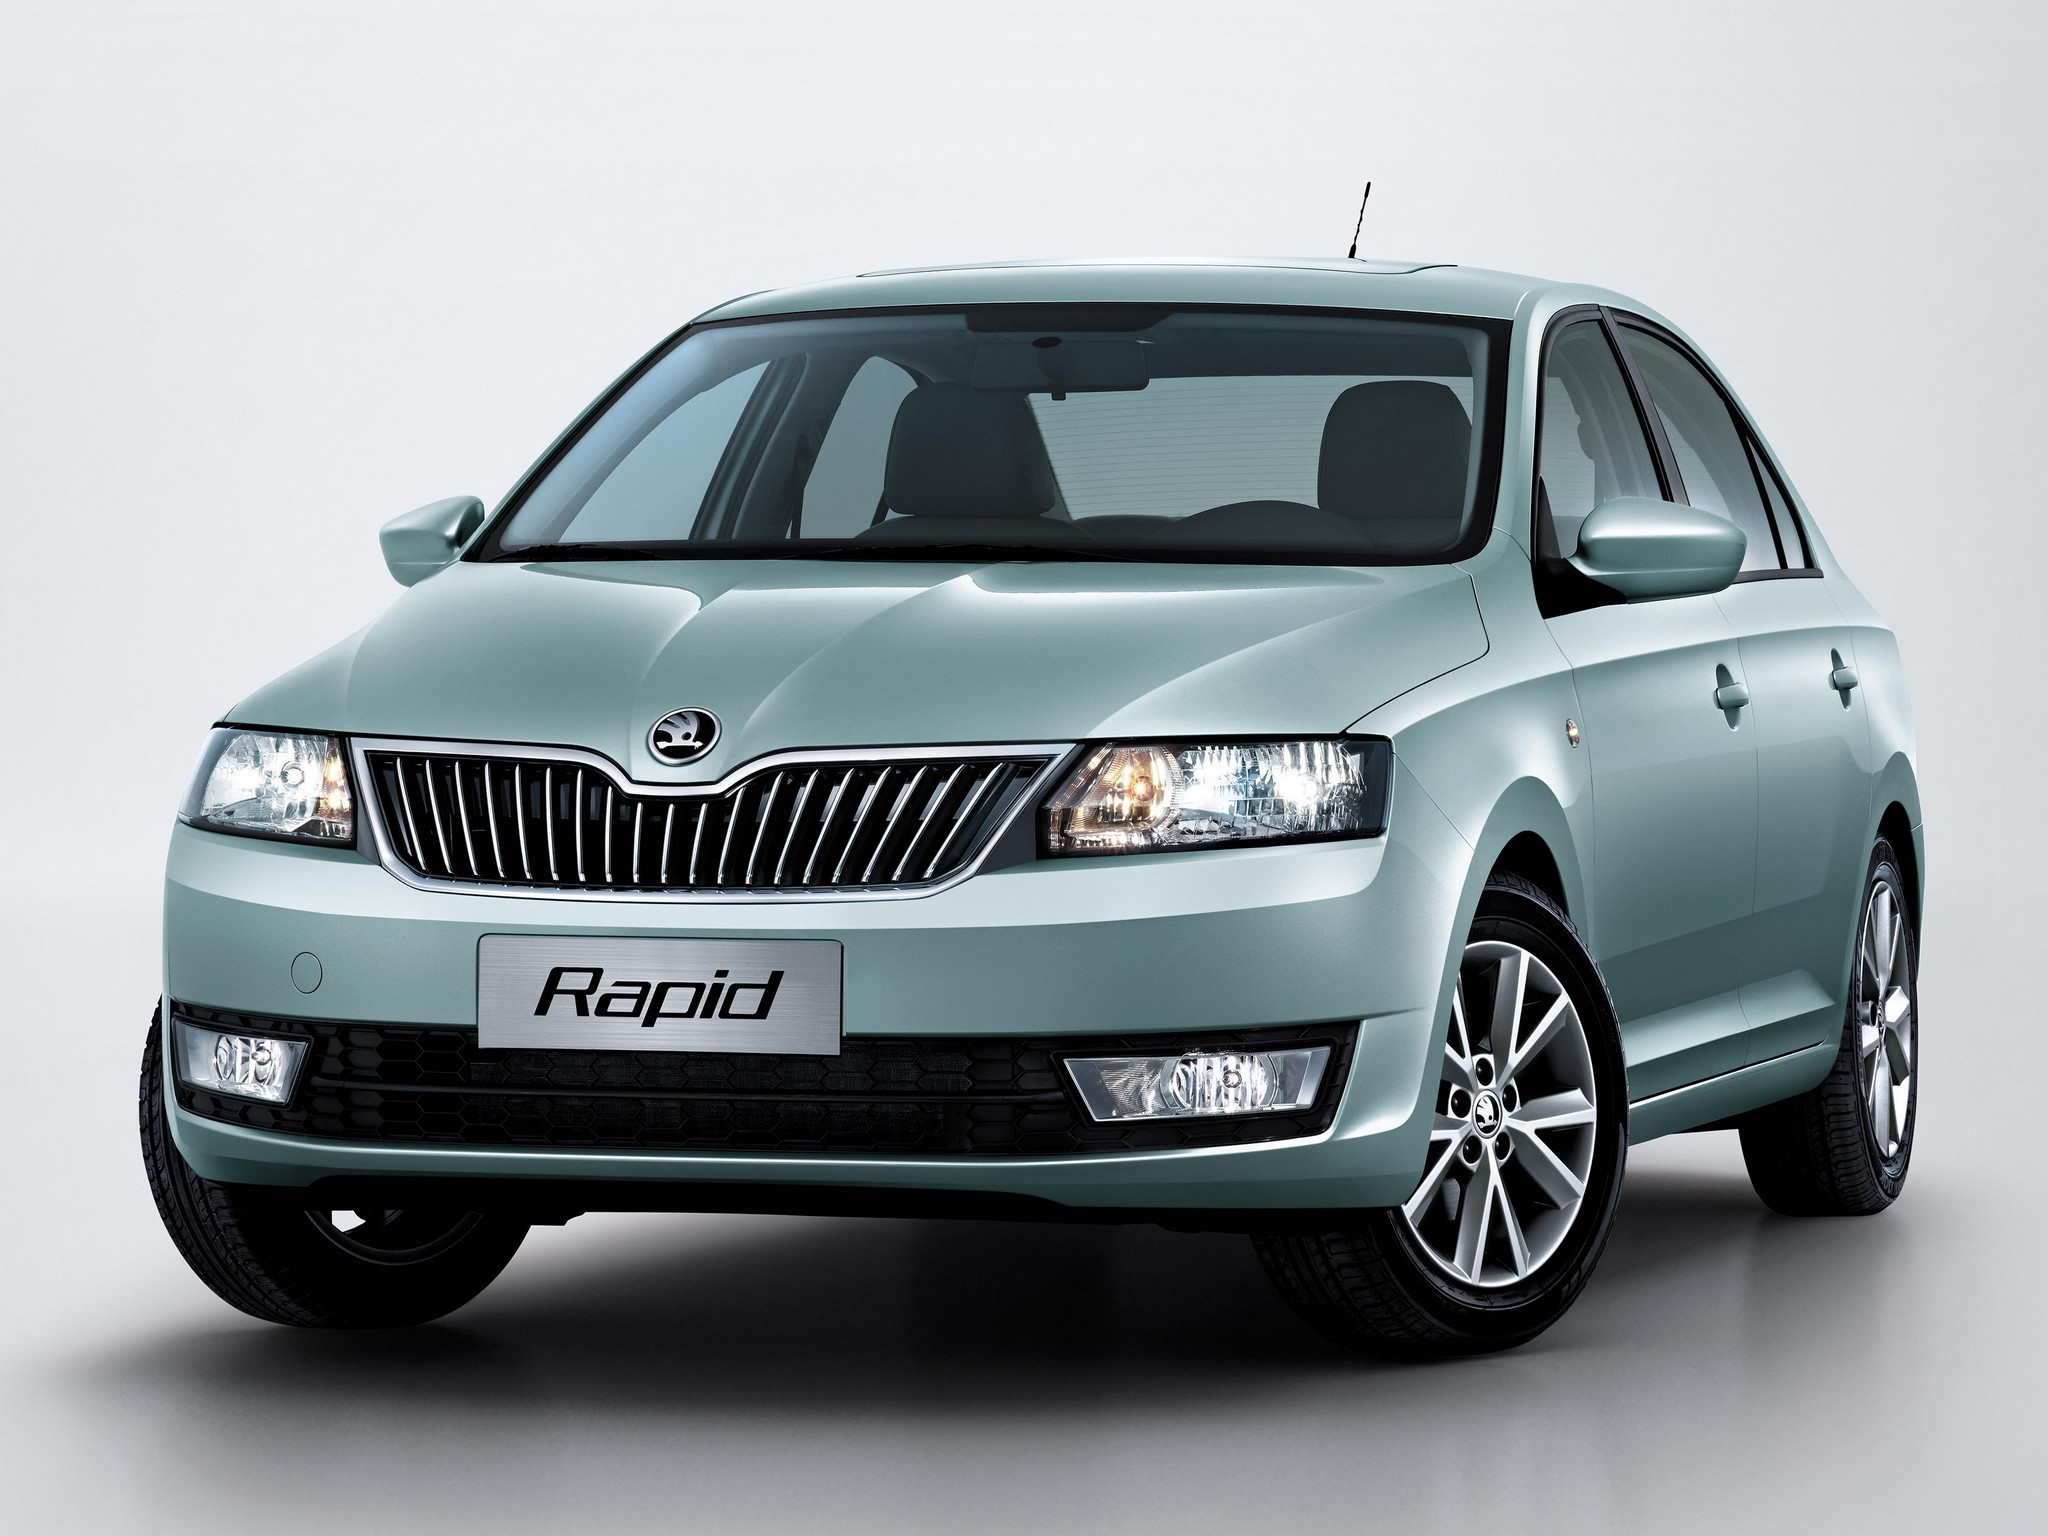 Skoda Cars India 19 Free Hd Wallpaper